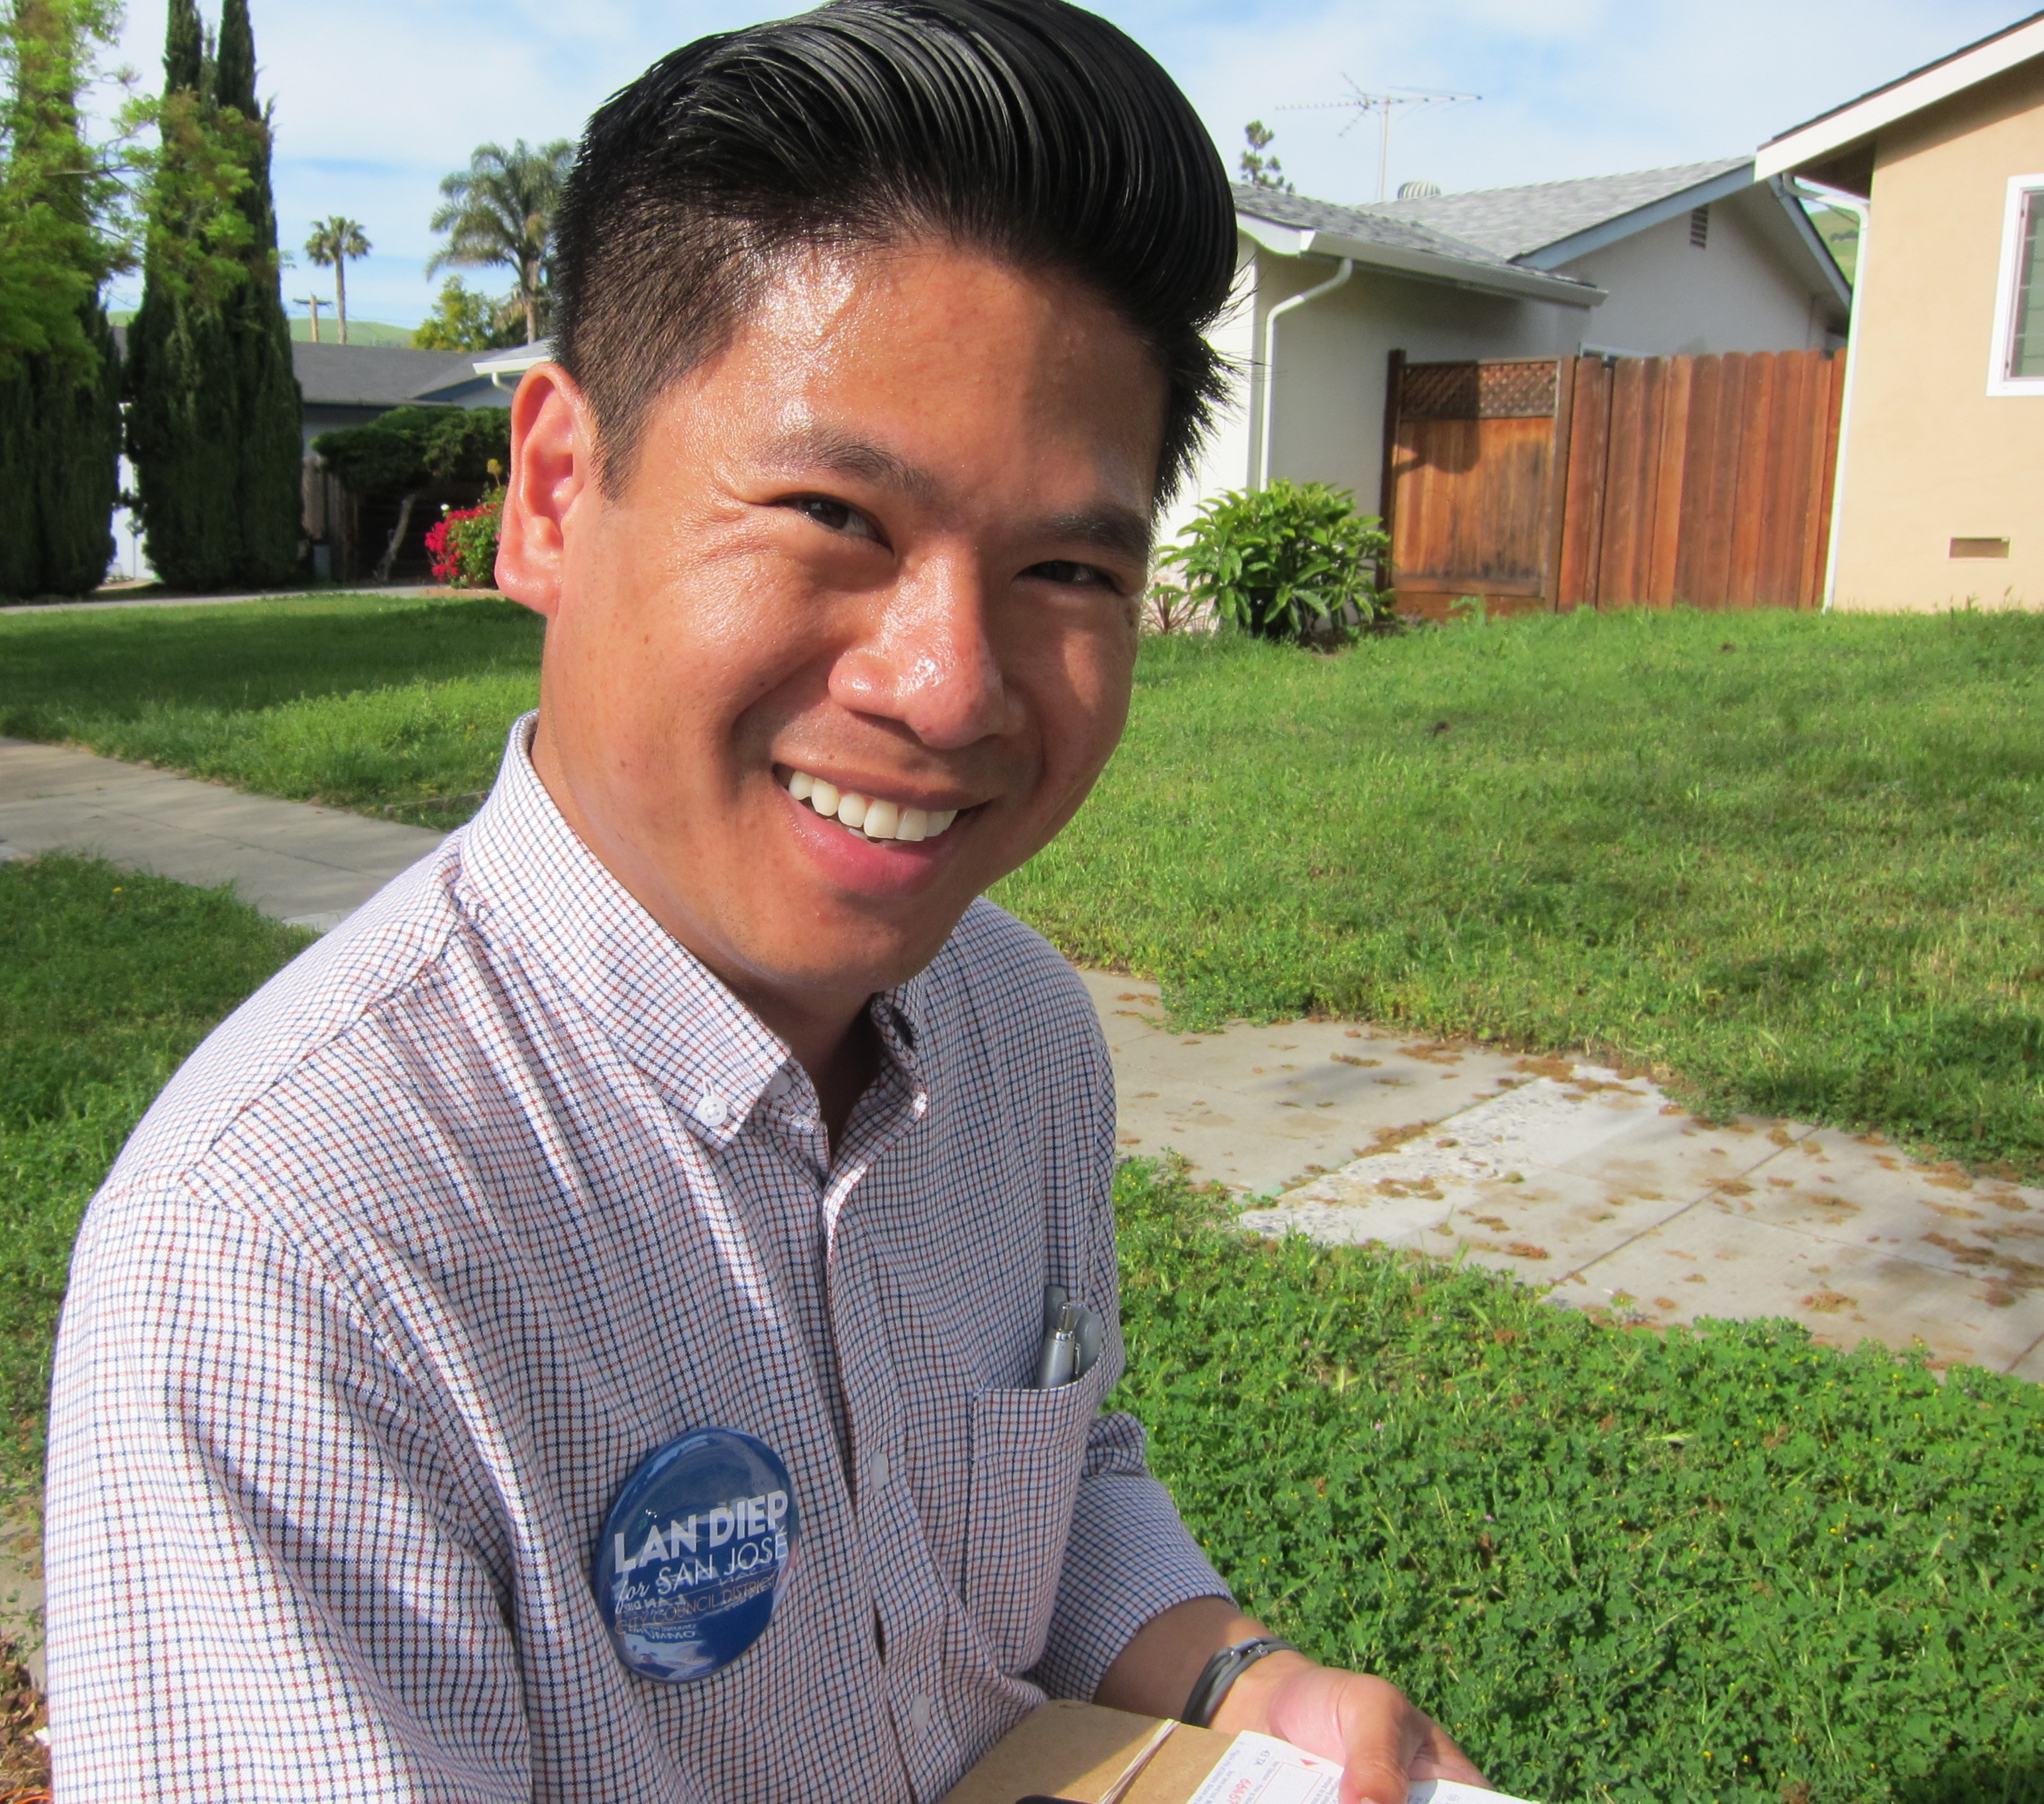 U.S.-Born Son of Refugees Tests San Jose's Appetite for Next-Gen Viet Leaders